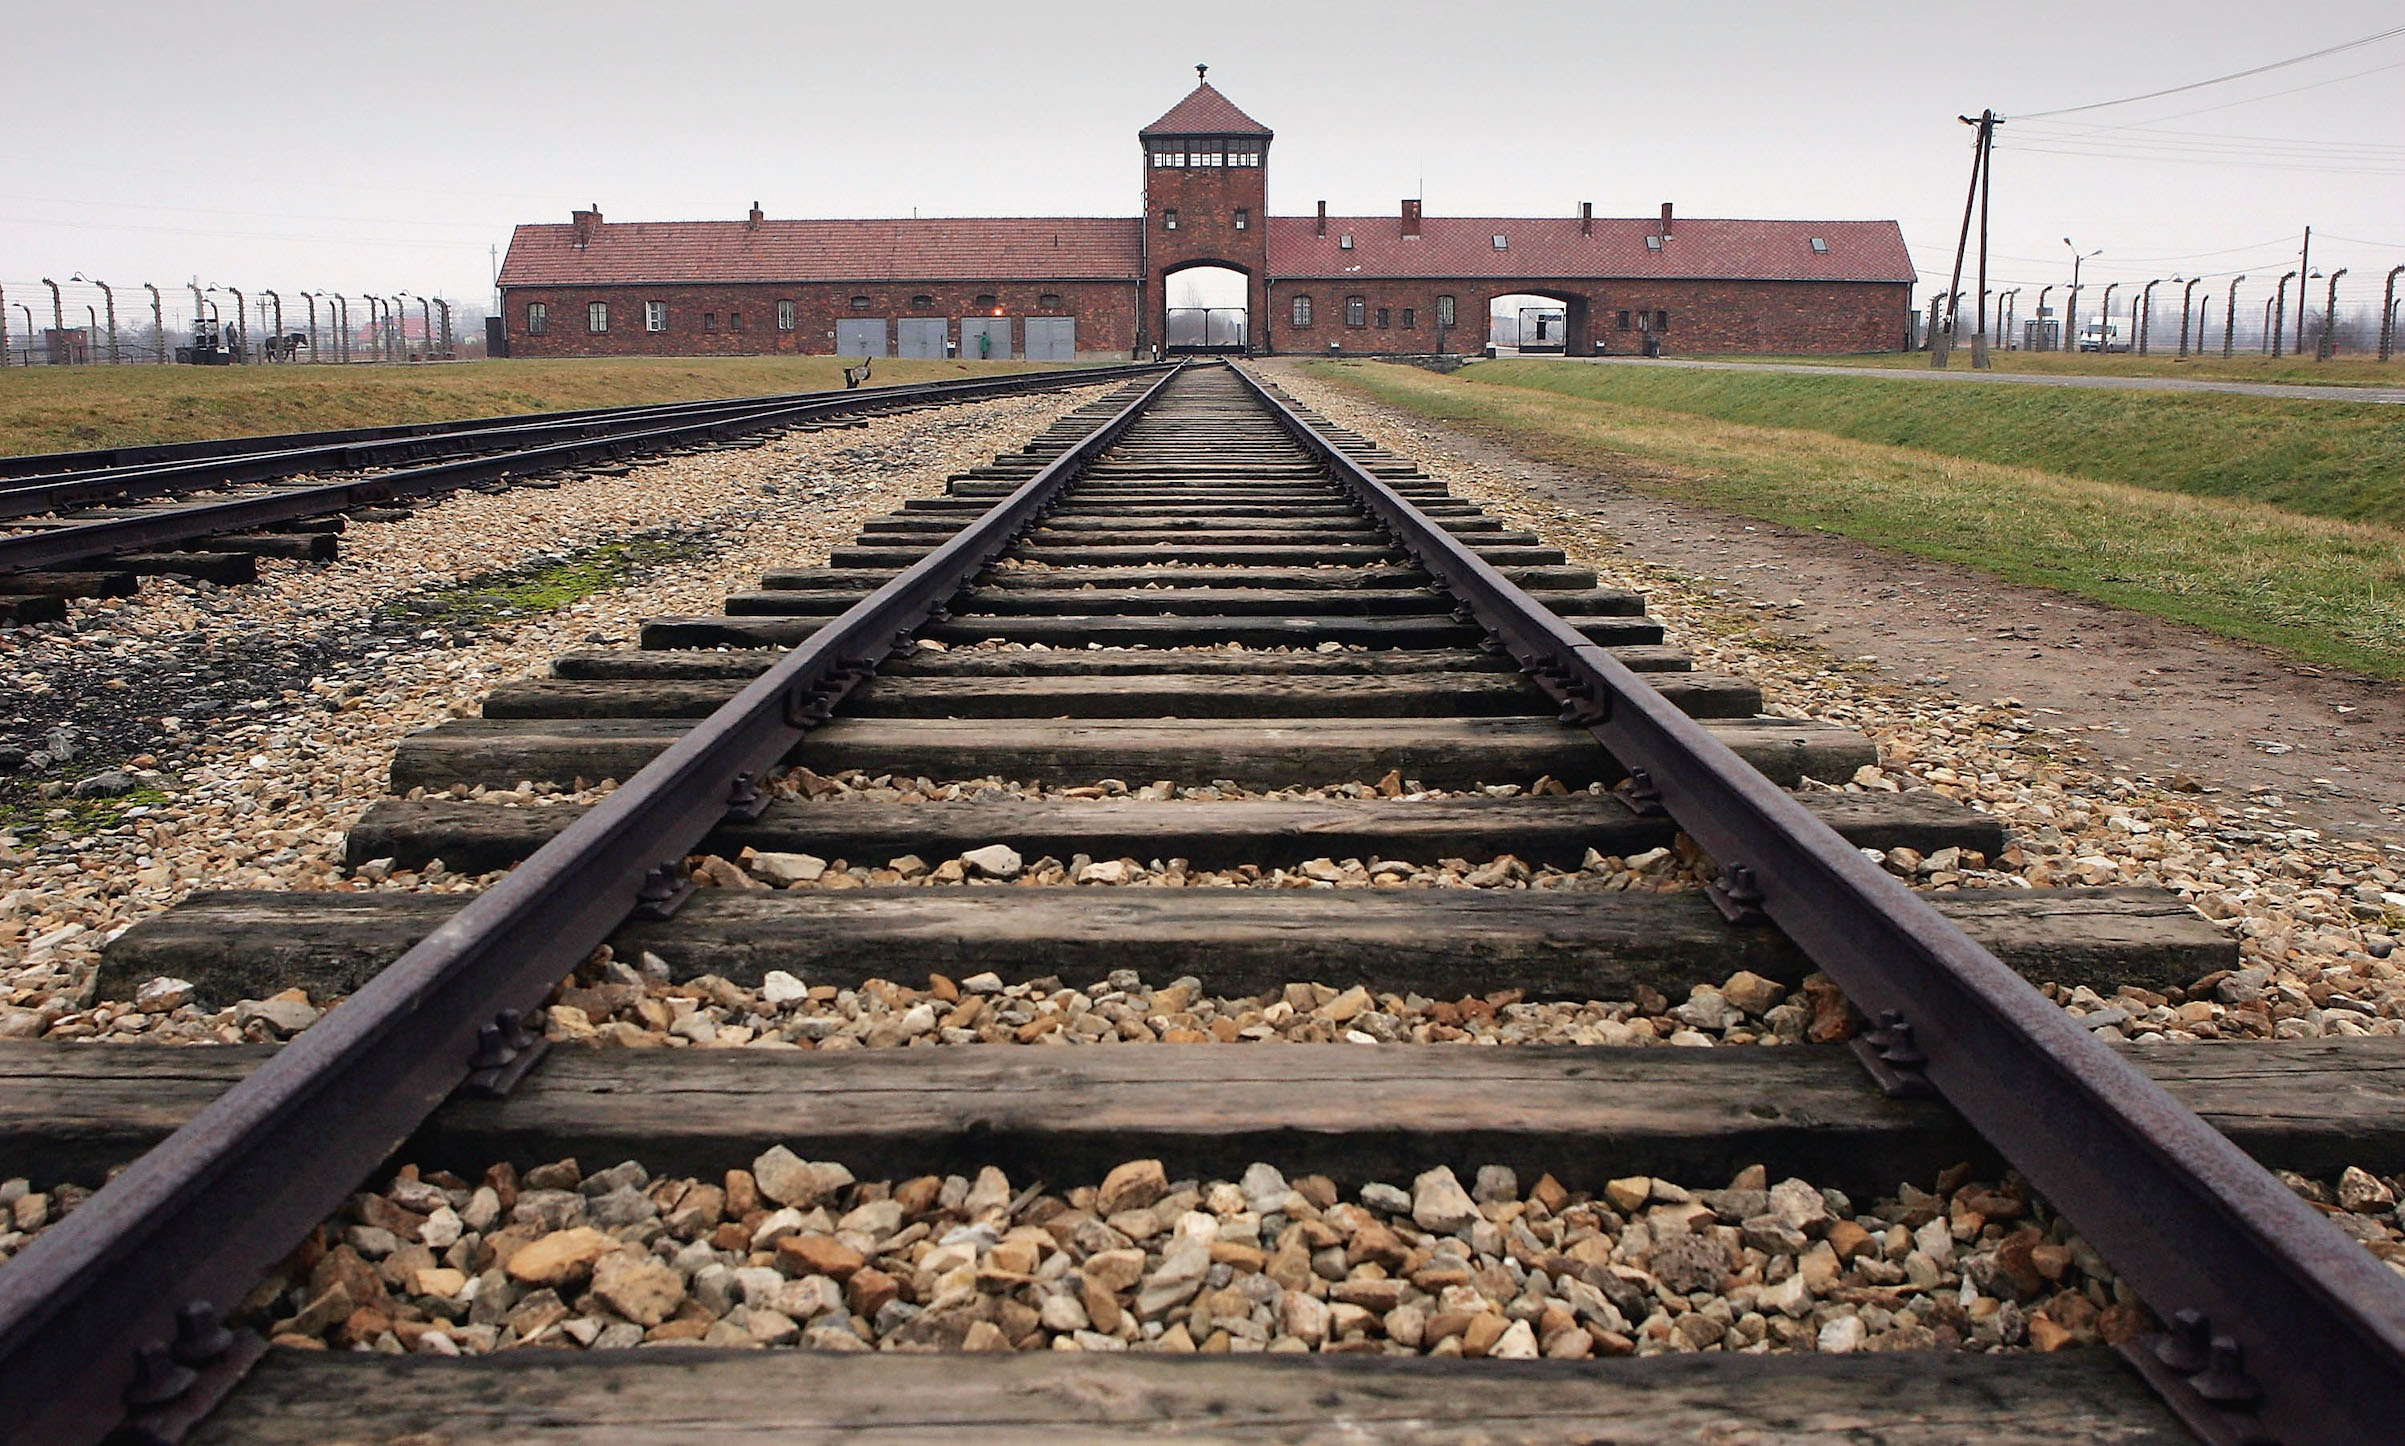 The railway tracks leading to the main gates at Auschwitz, seen Dec. 10, 2004.